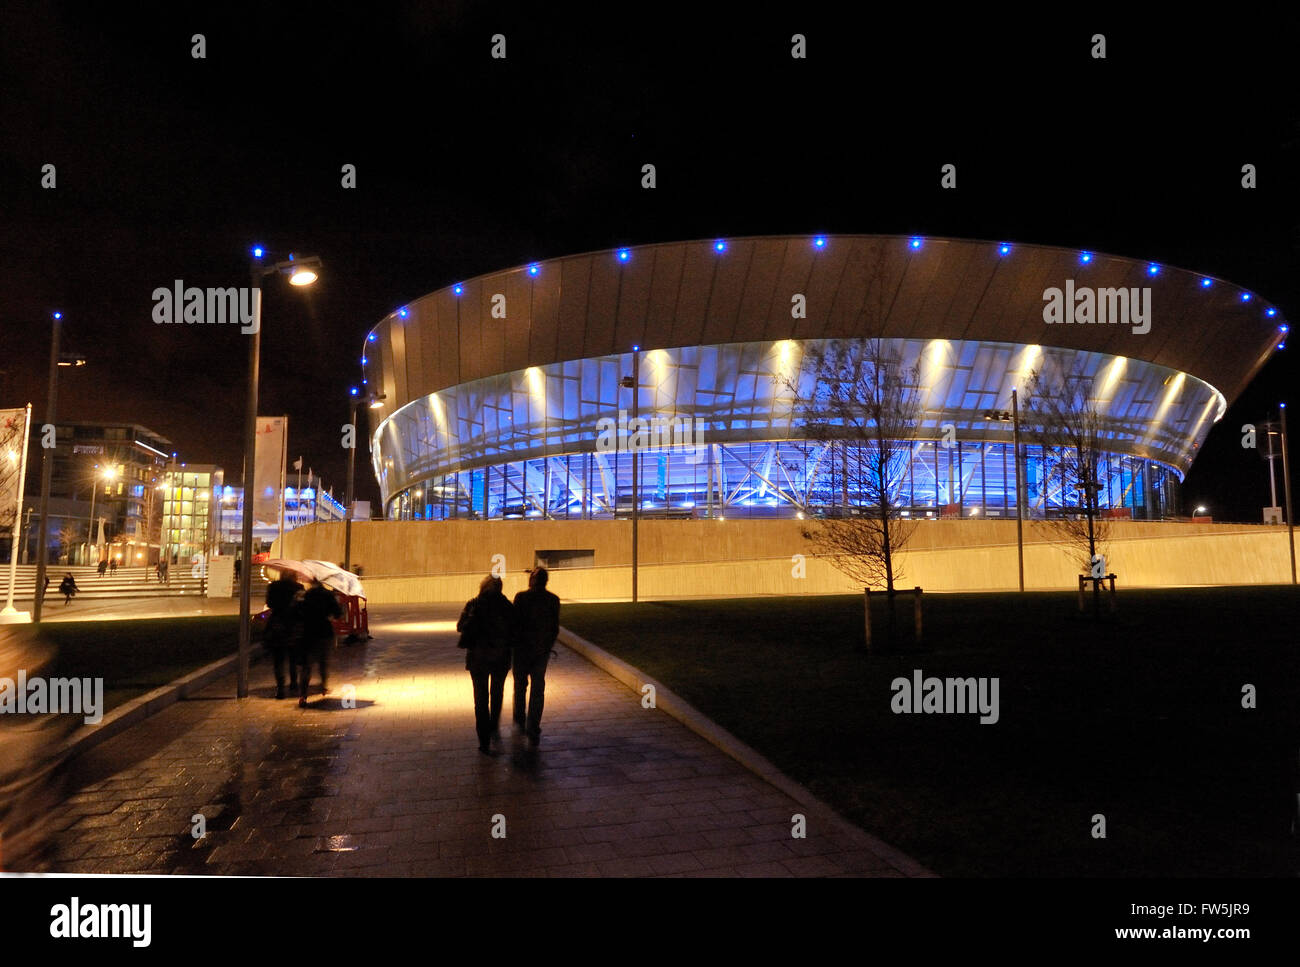 Liverpool Echo Arena, at night, part of ACC, Liverpool Area and Convention Centre, Albert Dock. Audience capacity - Stock Image